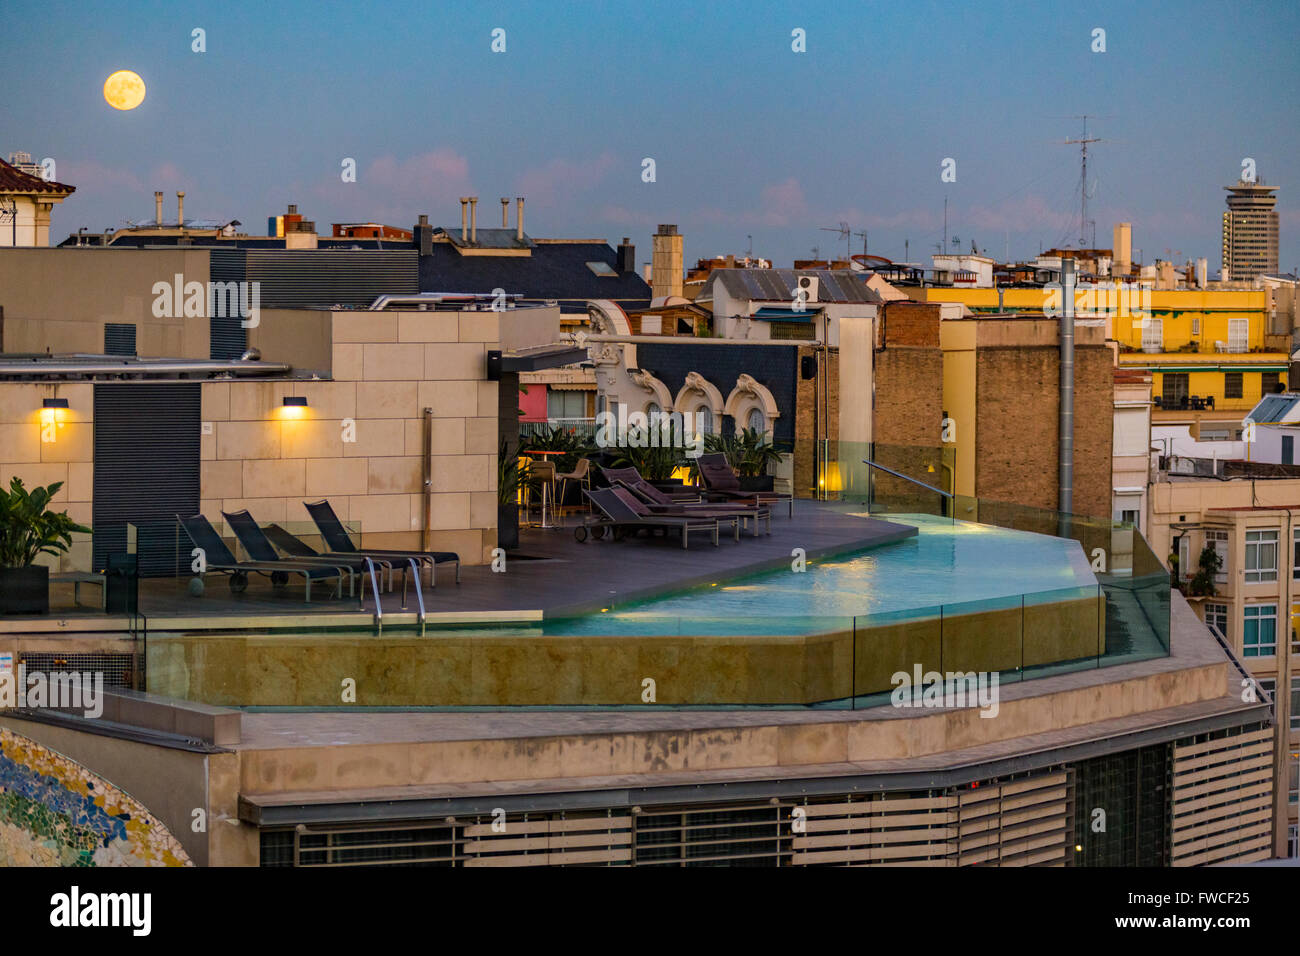 Moon over rooftop pool, Barcelona, Catalonia, Spain - Stock Image